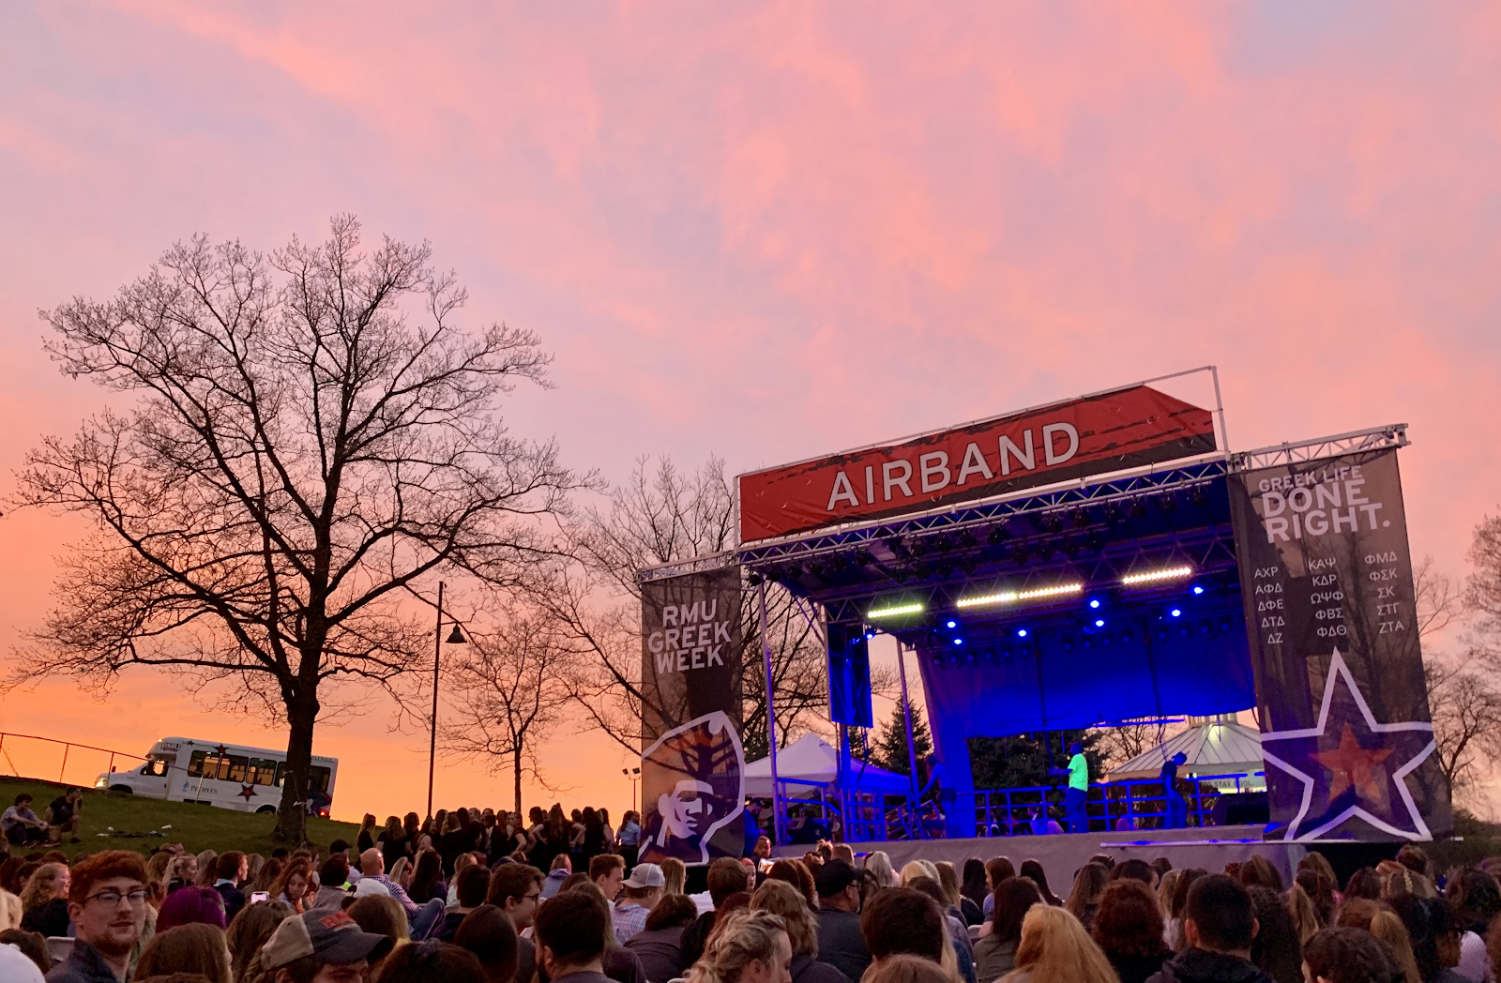 RMU+students+enjoy+a+scenic+spring+sunset+April+12%2C+2019+during+one+of+the+school%E2%80%99s+oldest+tradition%3A+Airband.+%28David+Auth%2FRMU+Sentry+Media%29